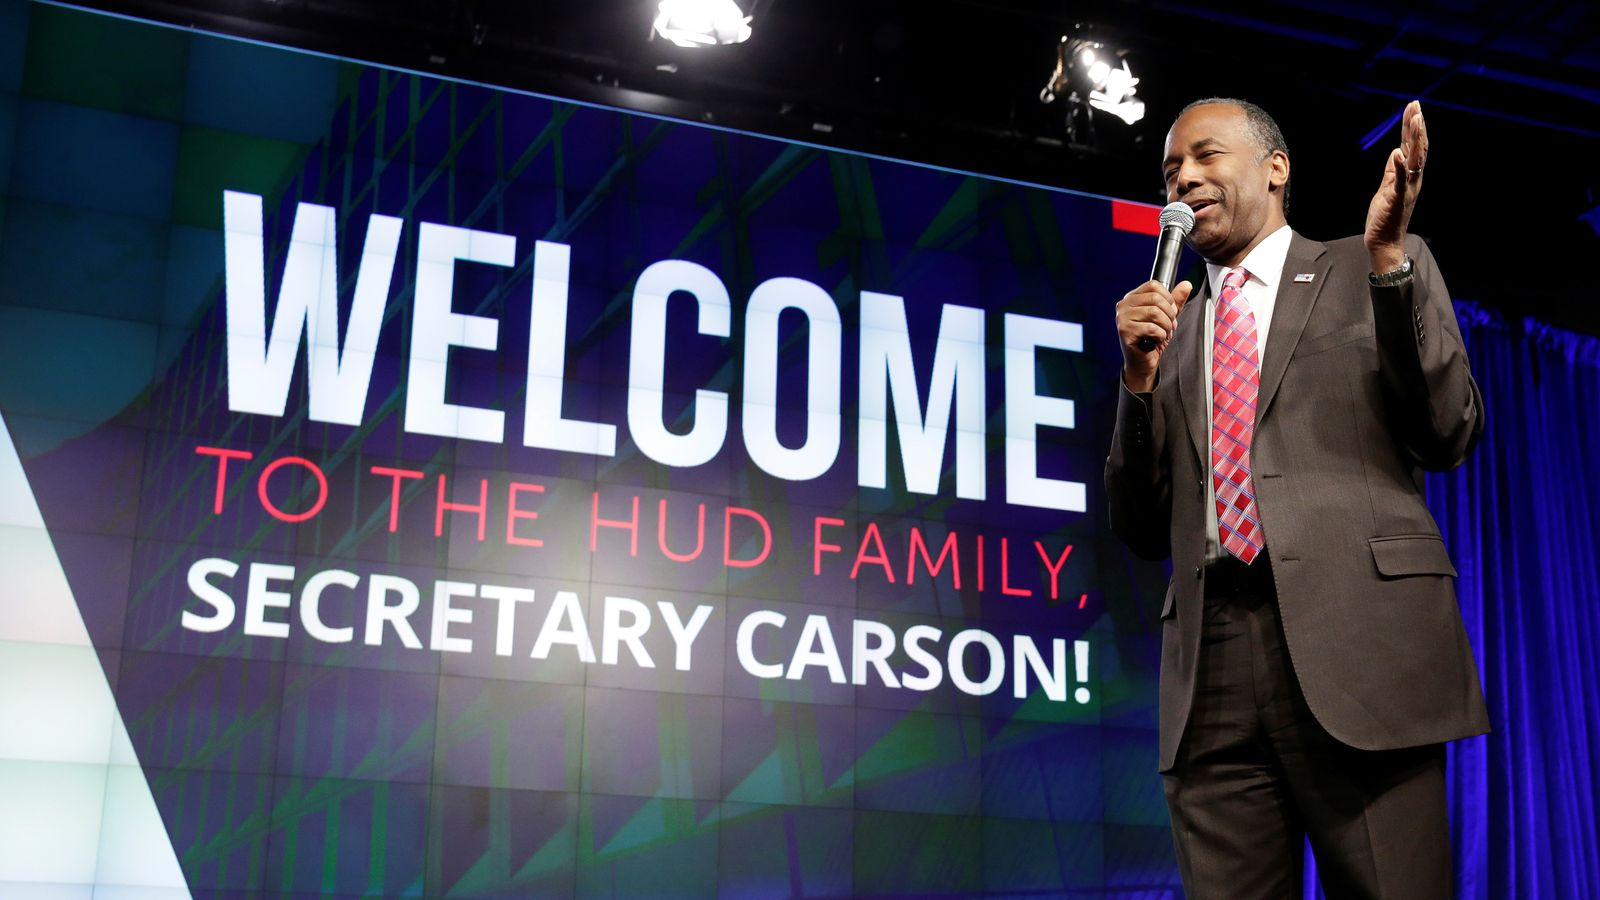 Dr Carson has been considered a motivational speaker in African-American communities